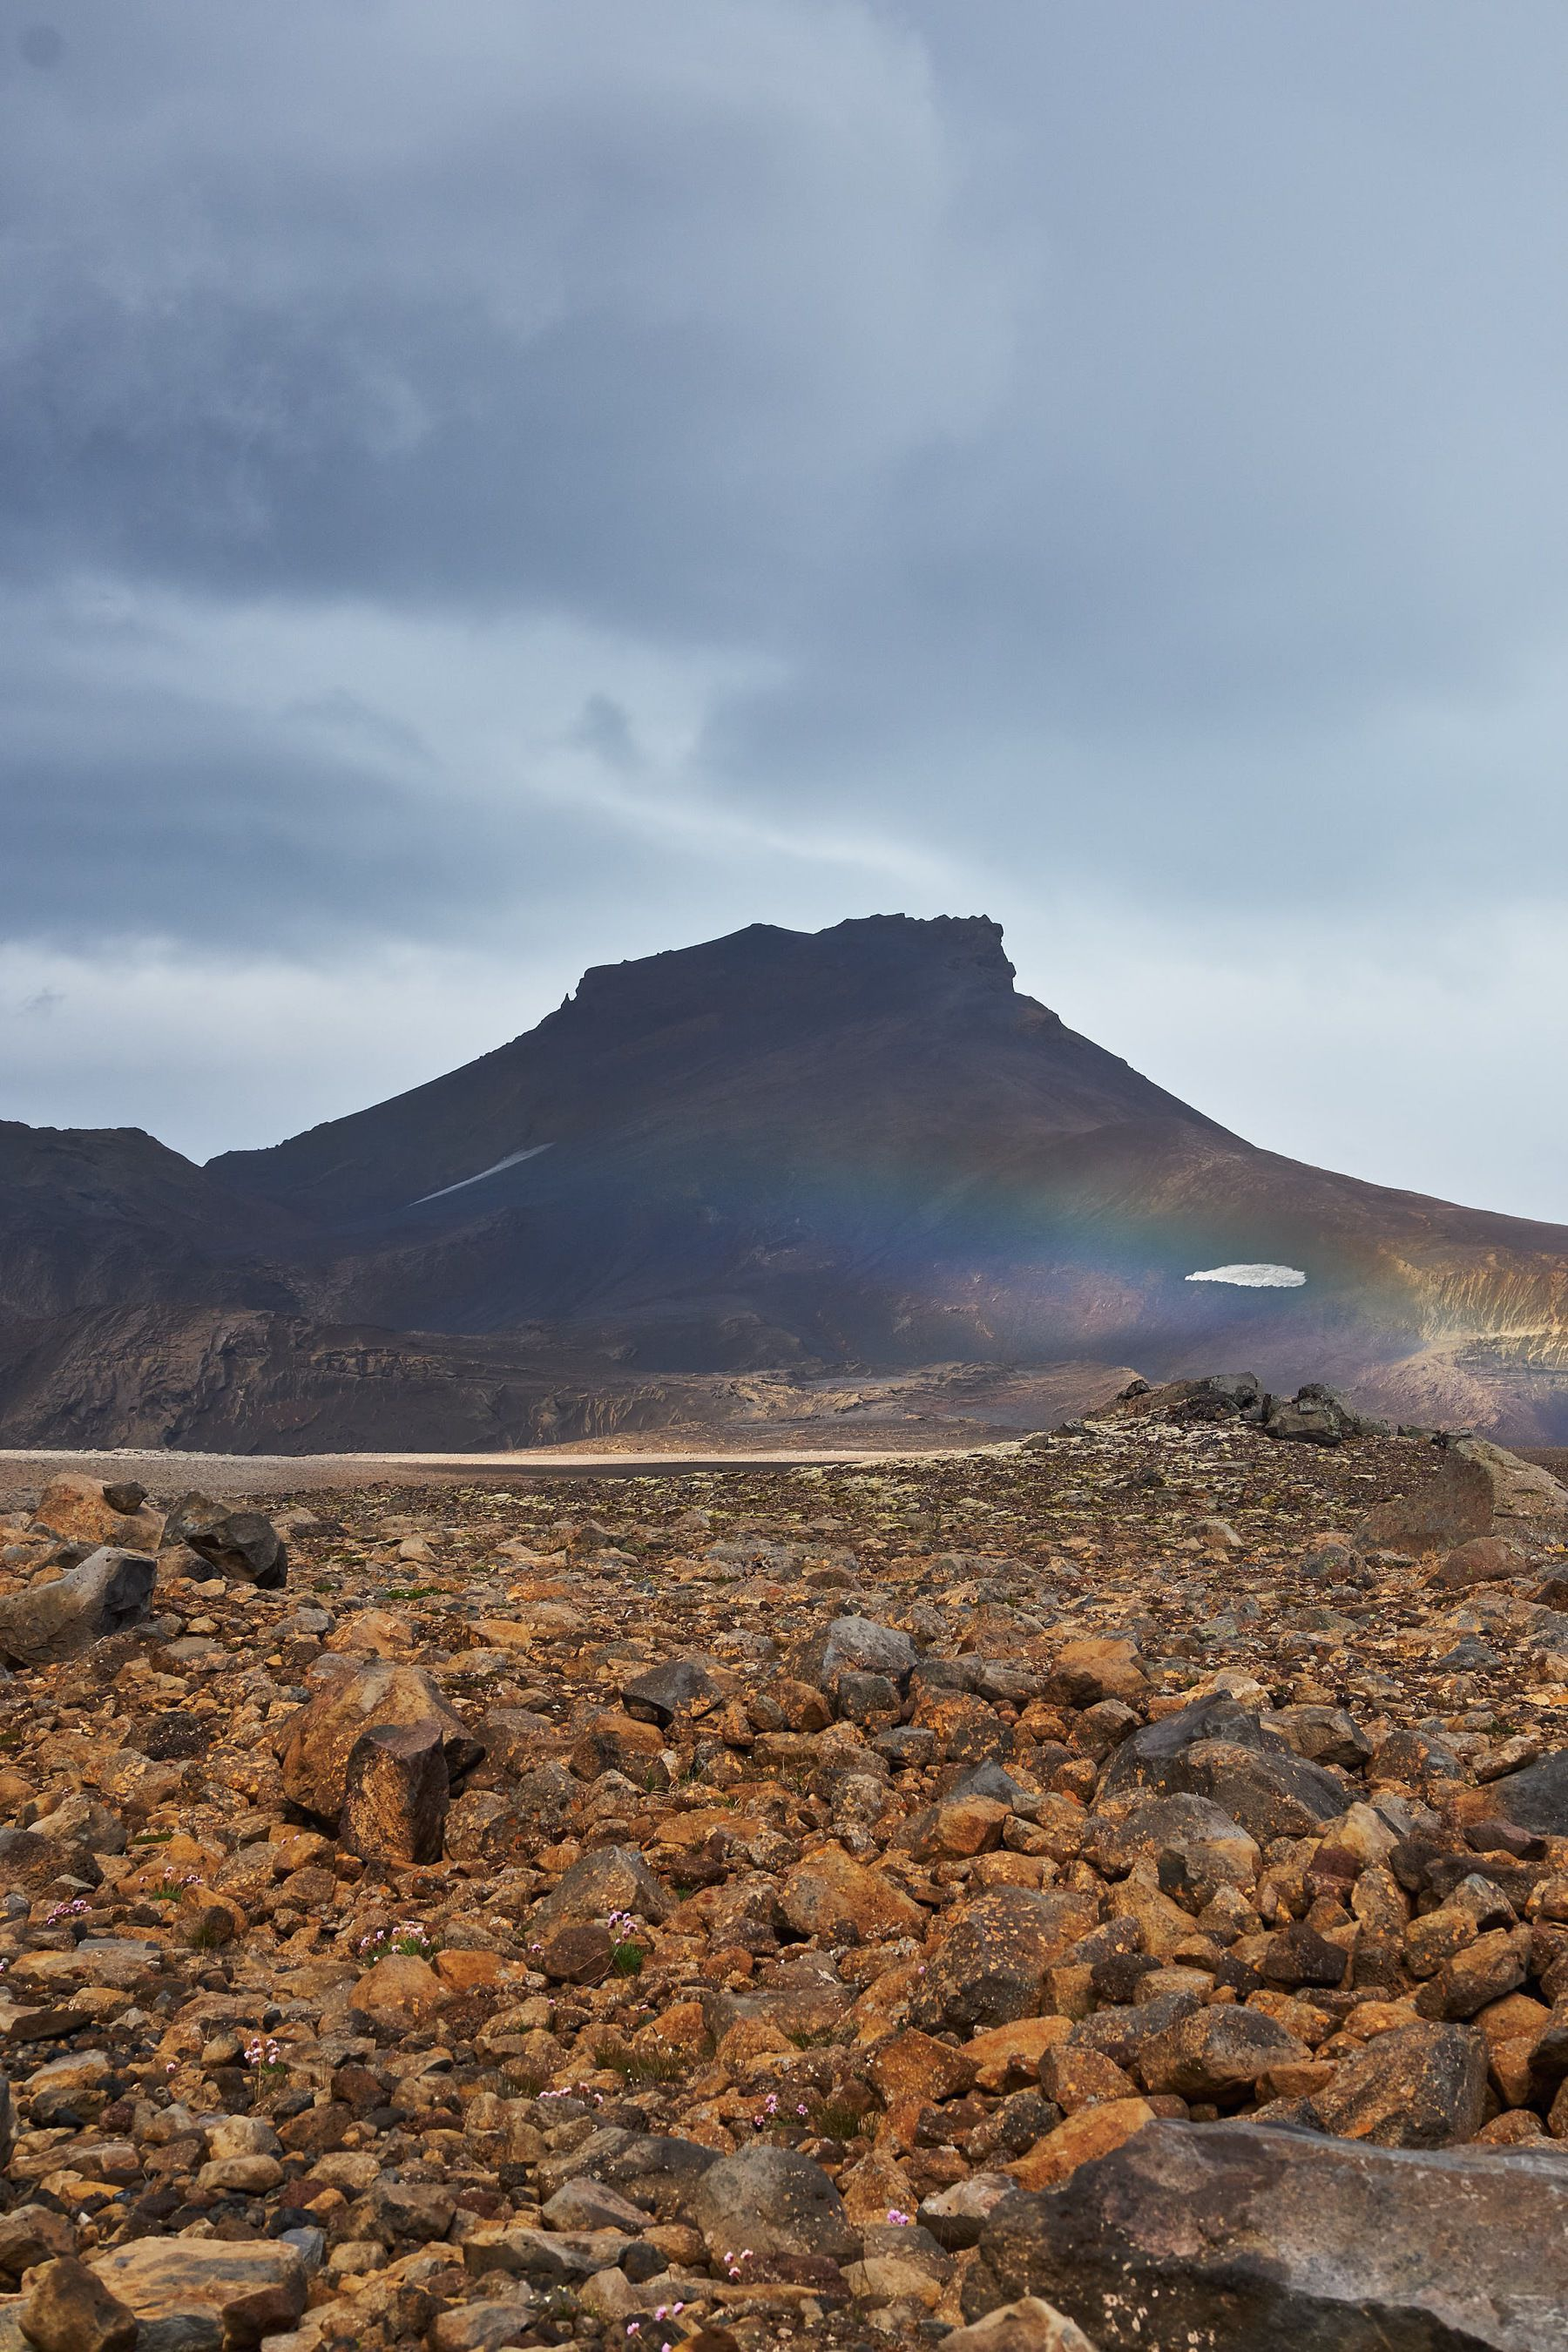 Barren highlands. A mountain is centred in the background, partially covered by a rainbow.